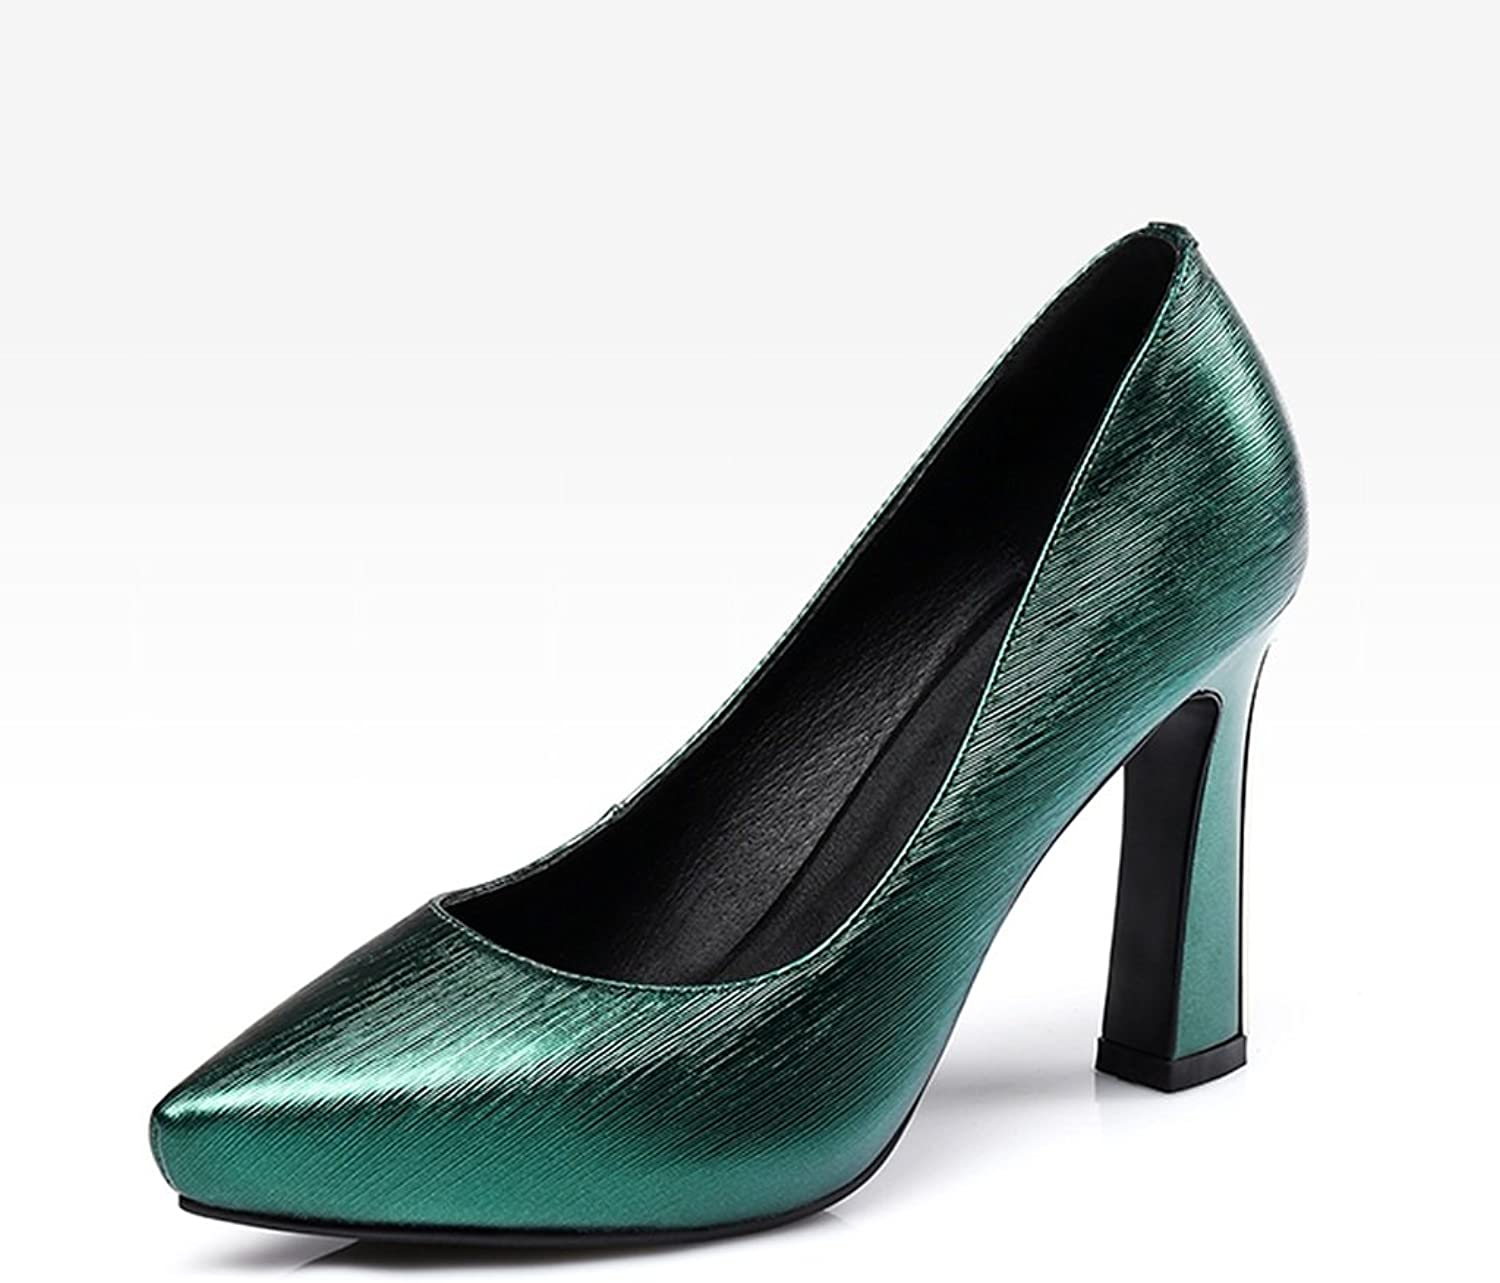 YUBIN Spring Youth High Heels Platform with Thick Leather Shallow Mouth Pointed Single shoes Female Fashion Wild Women's shoes (color   Green, Size   38)